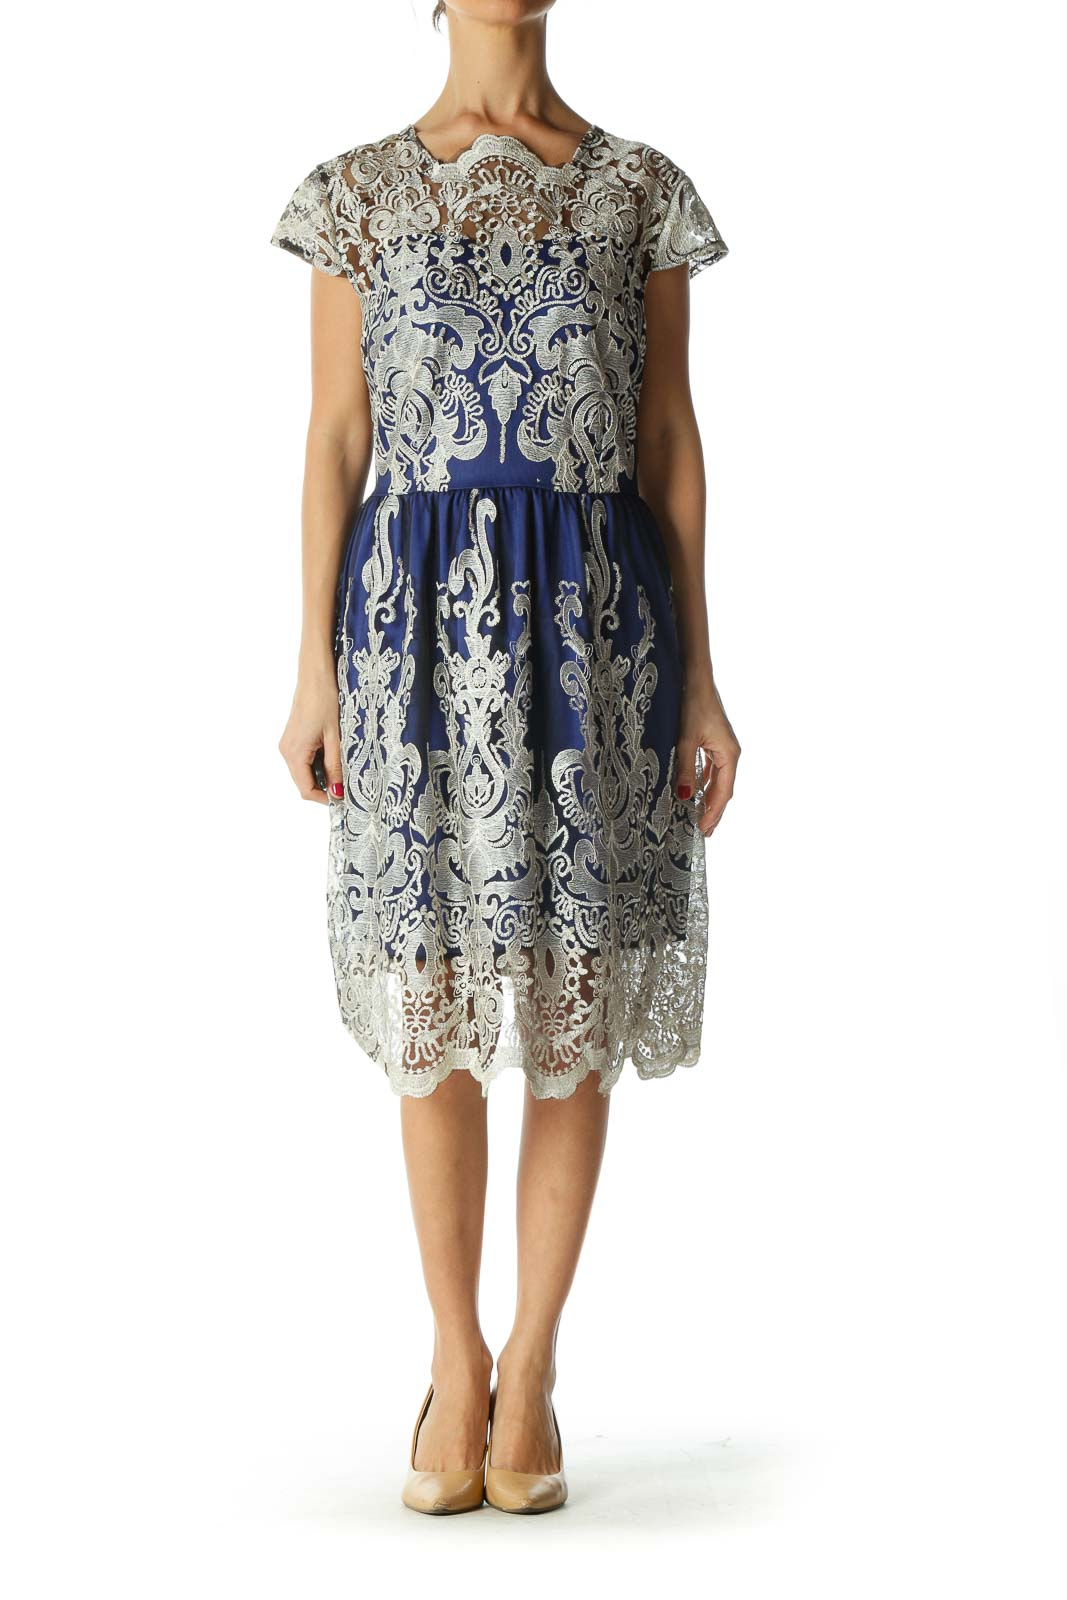 Blue and Silver Embroidered Dress